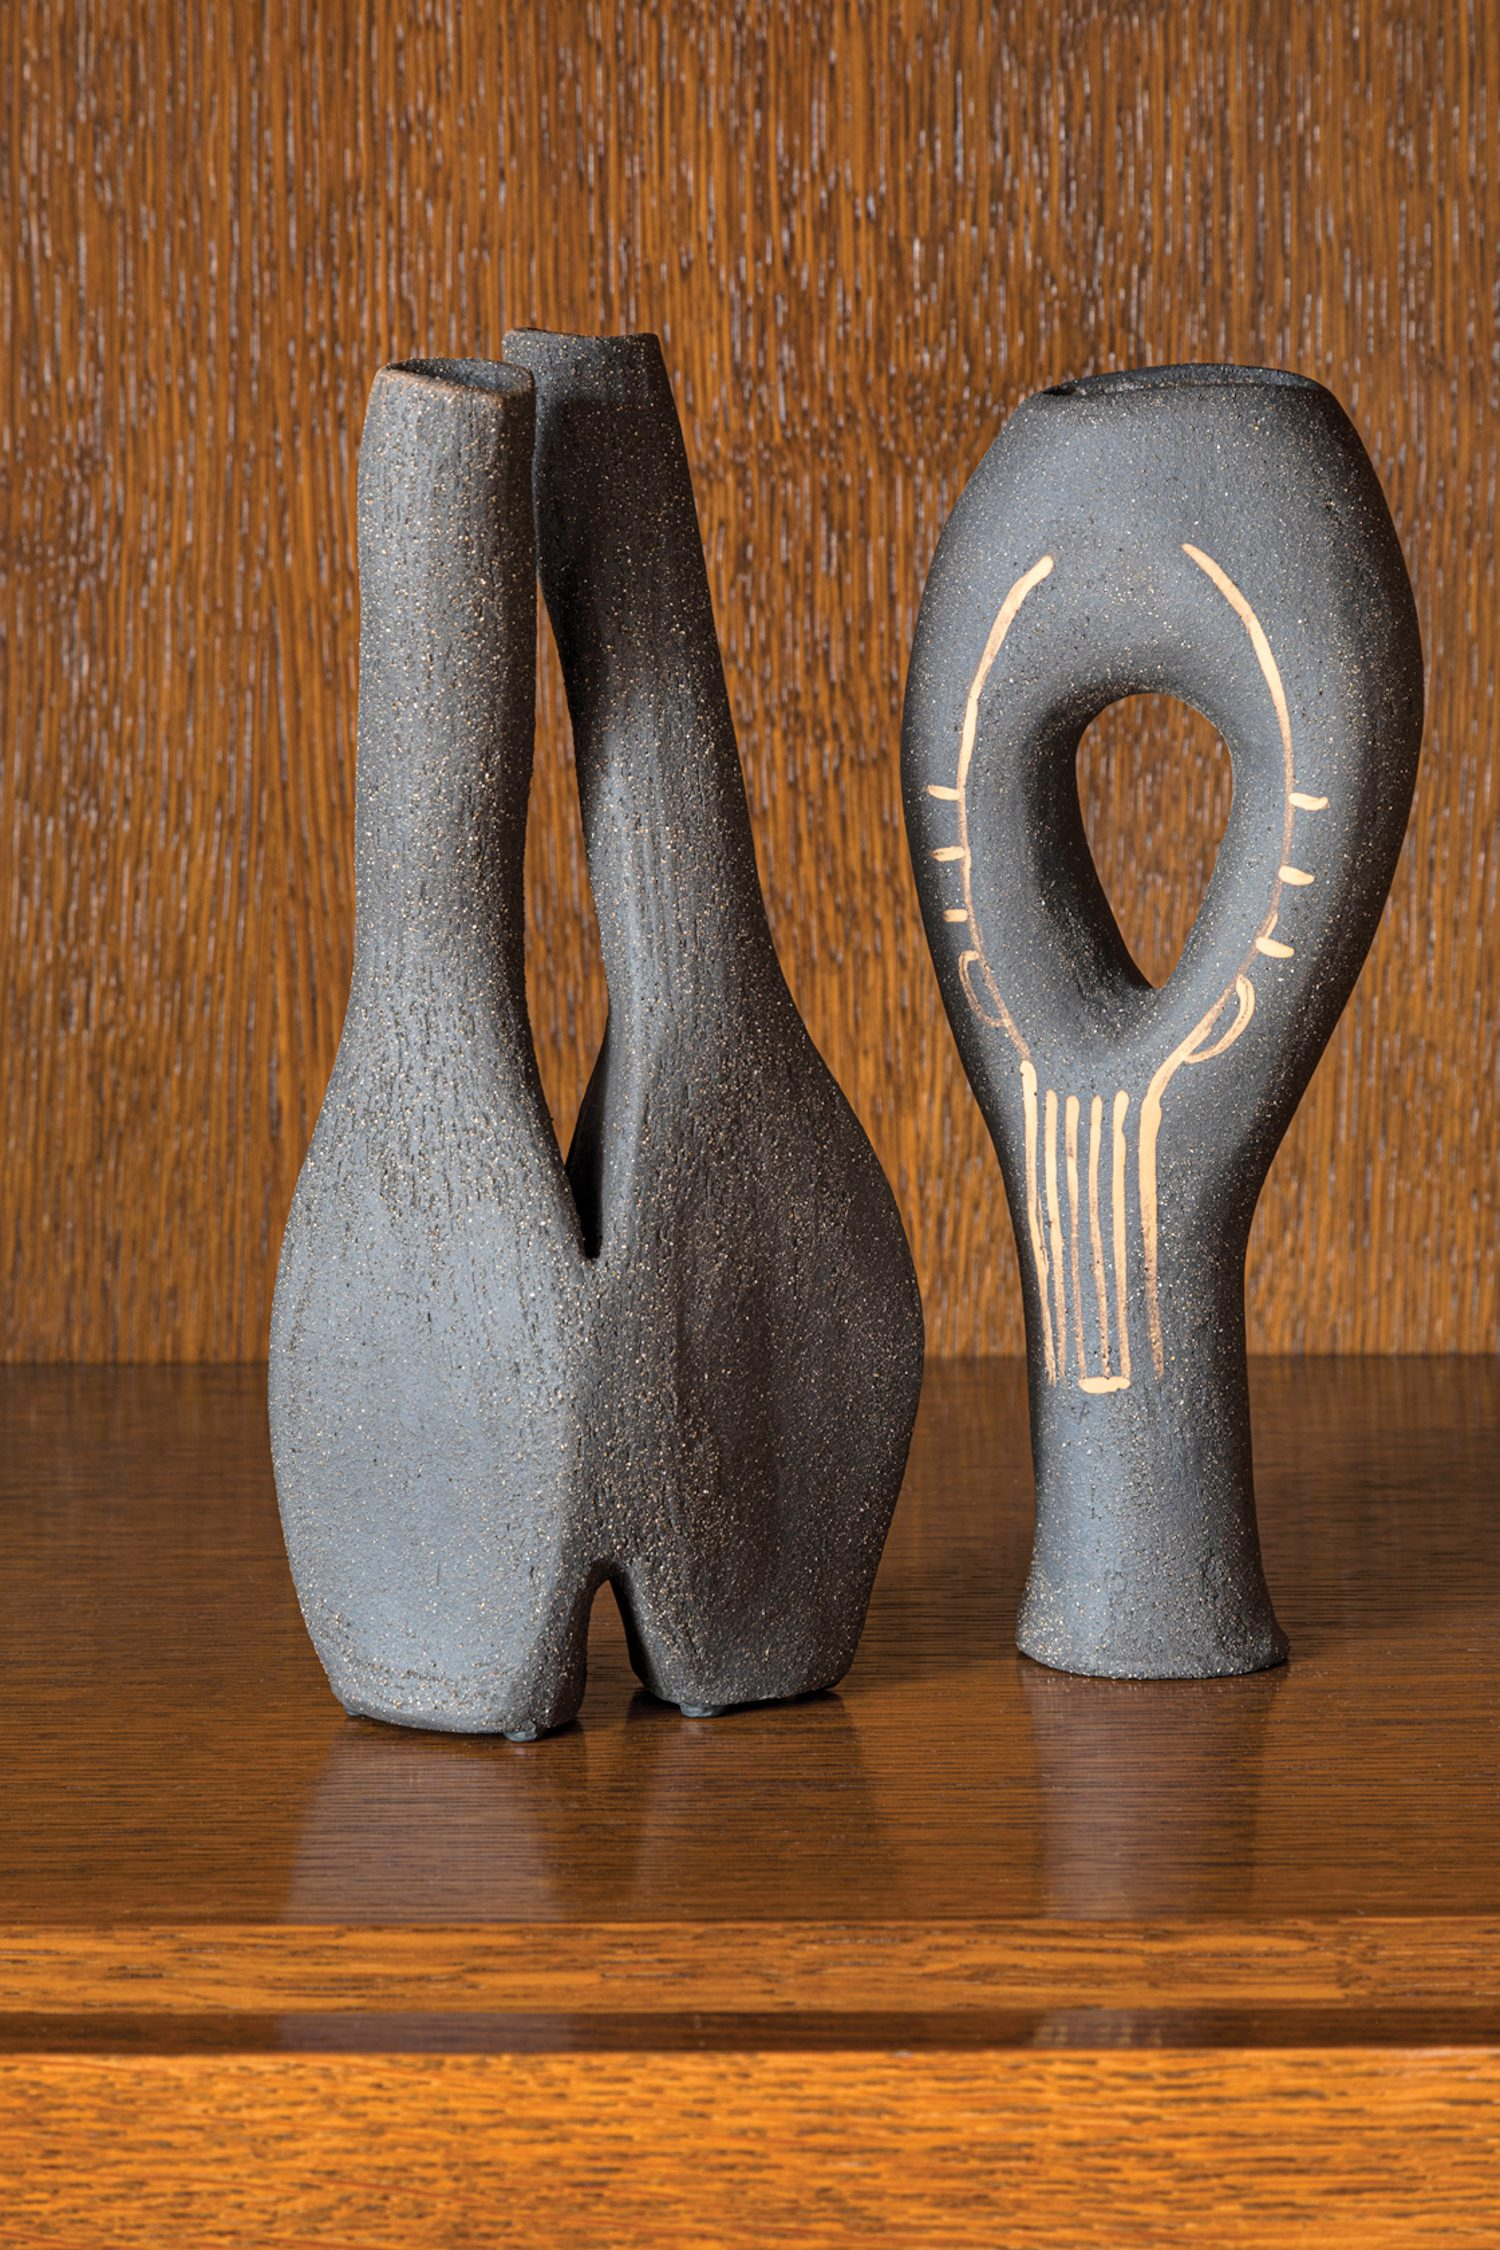 Ceramics by Abid Javed have pride of place on the sitting room shelving.